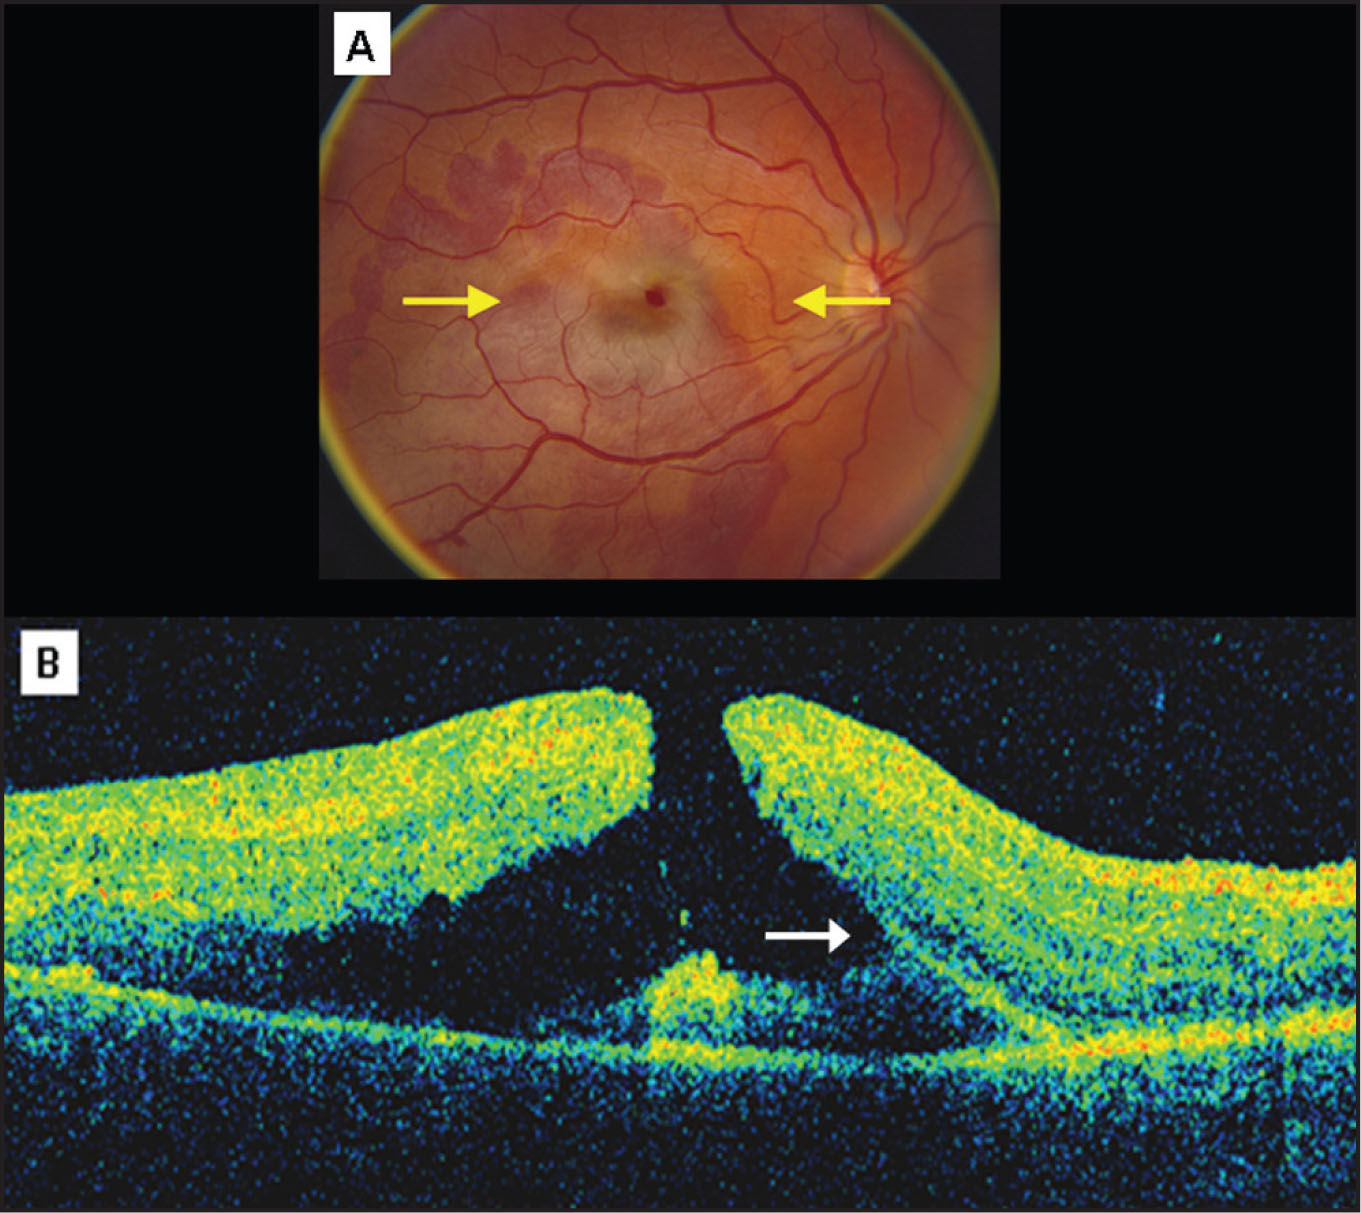 A Color Fundus Photograph Of The Right Eye 3 Days After Blunt Trauma Showing